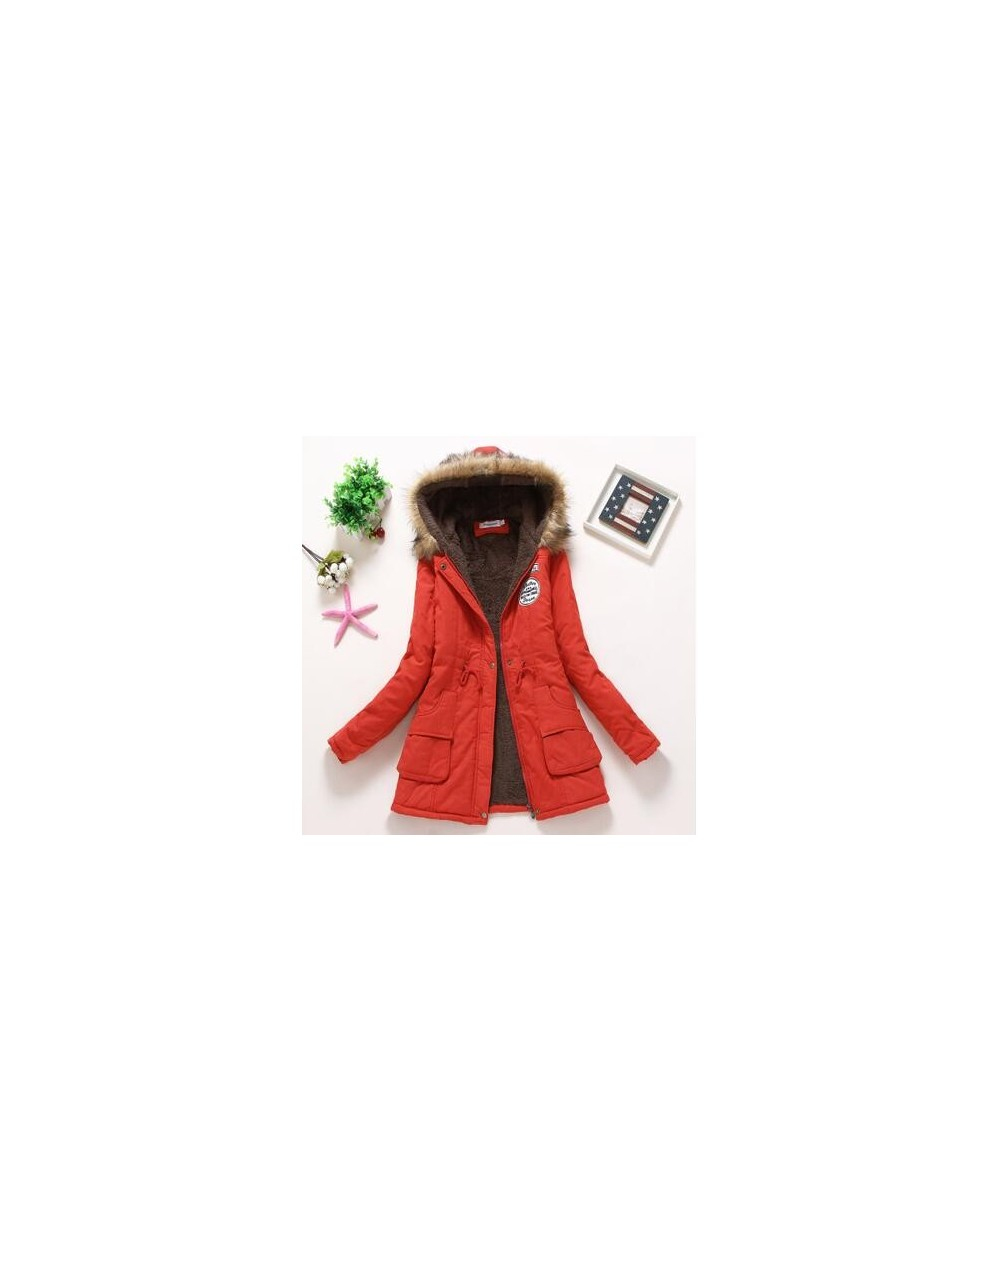 new winter military coats women cotton wadded hooded jacket medium-long casual parka thickness plus size XXXL quilt snow out...